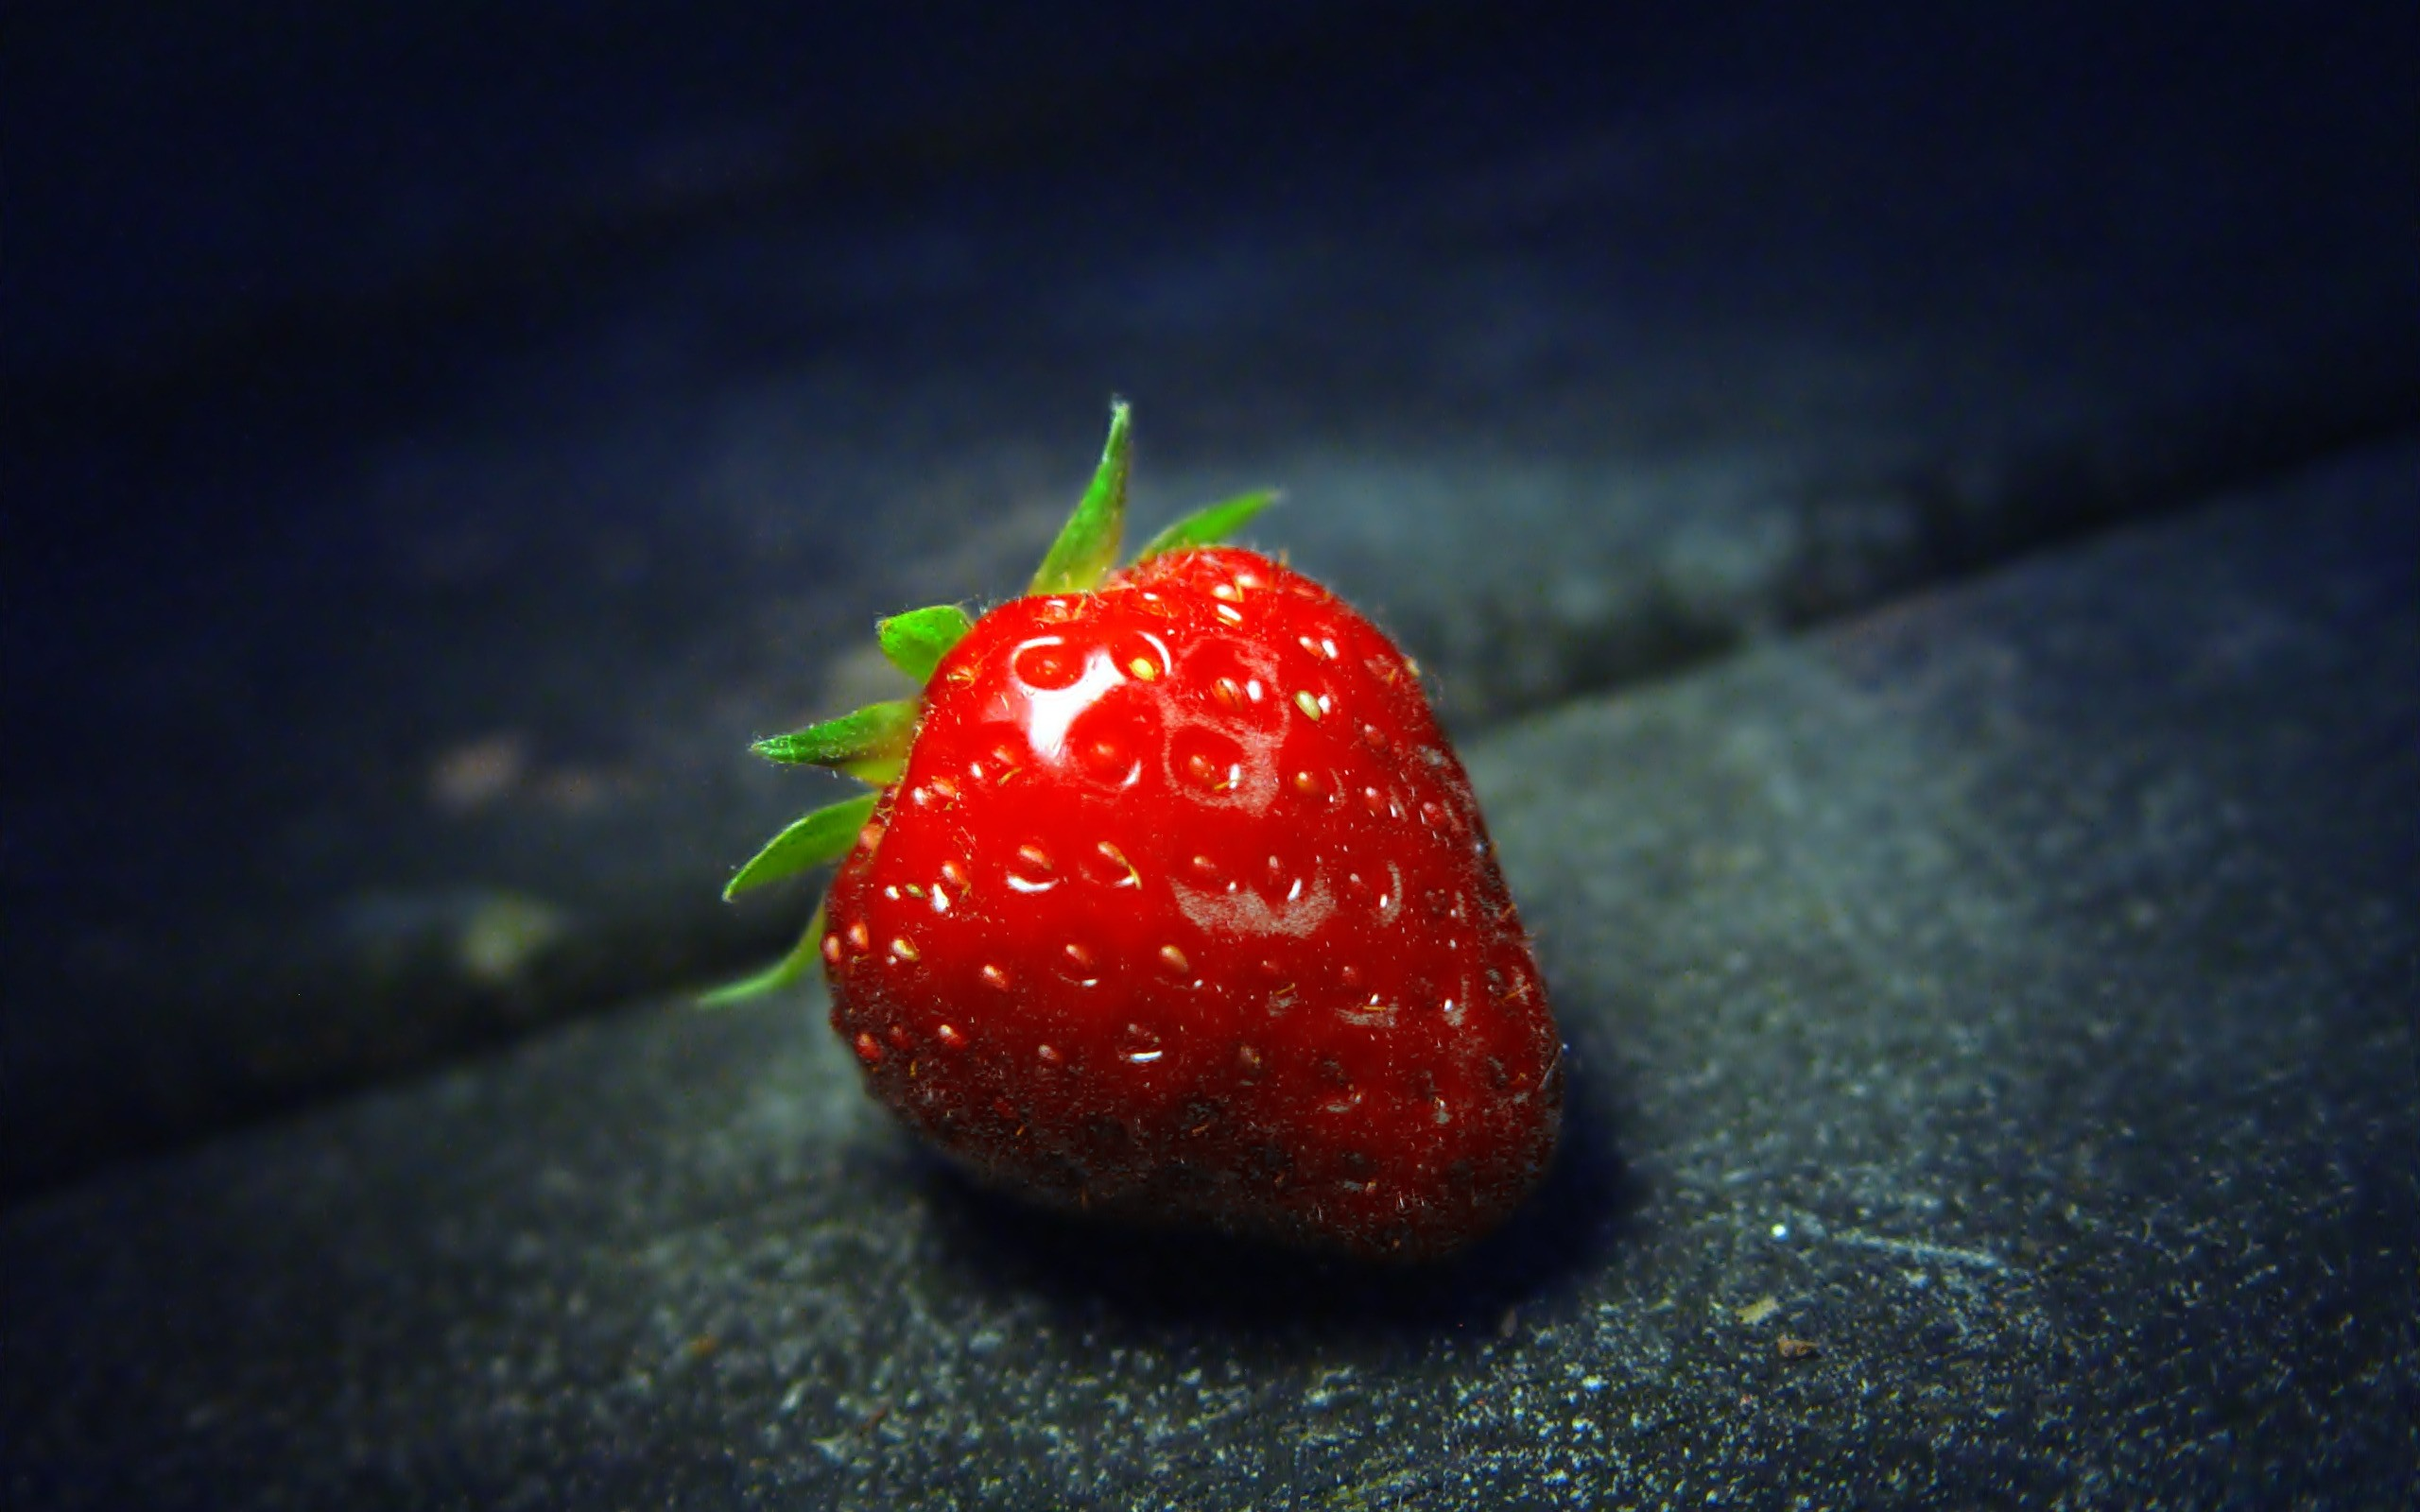 Berry, strawberry close-up on dark background, photo: 2560x1600